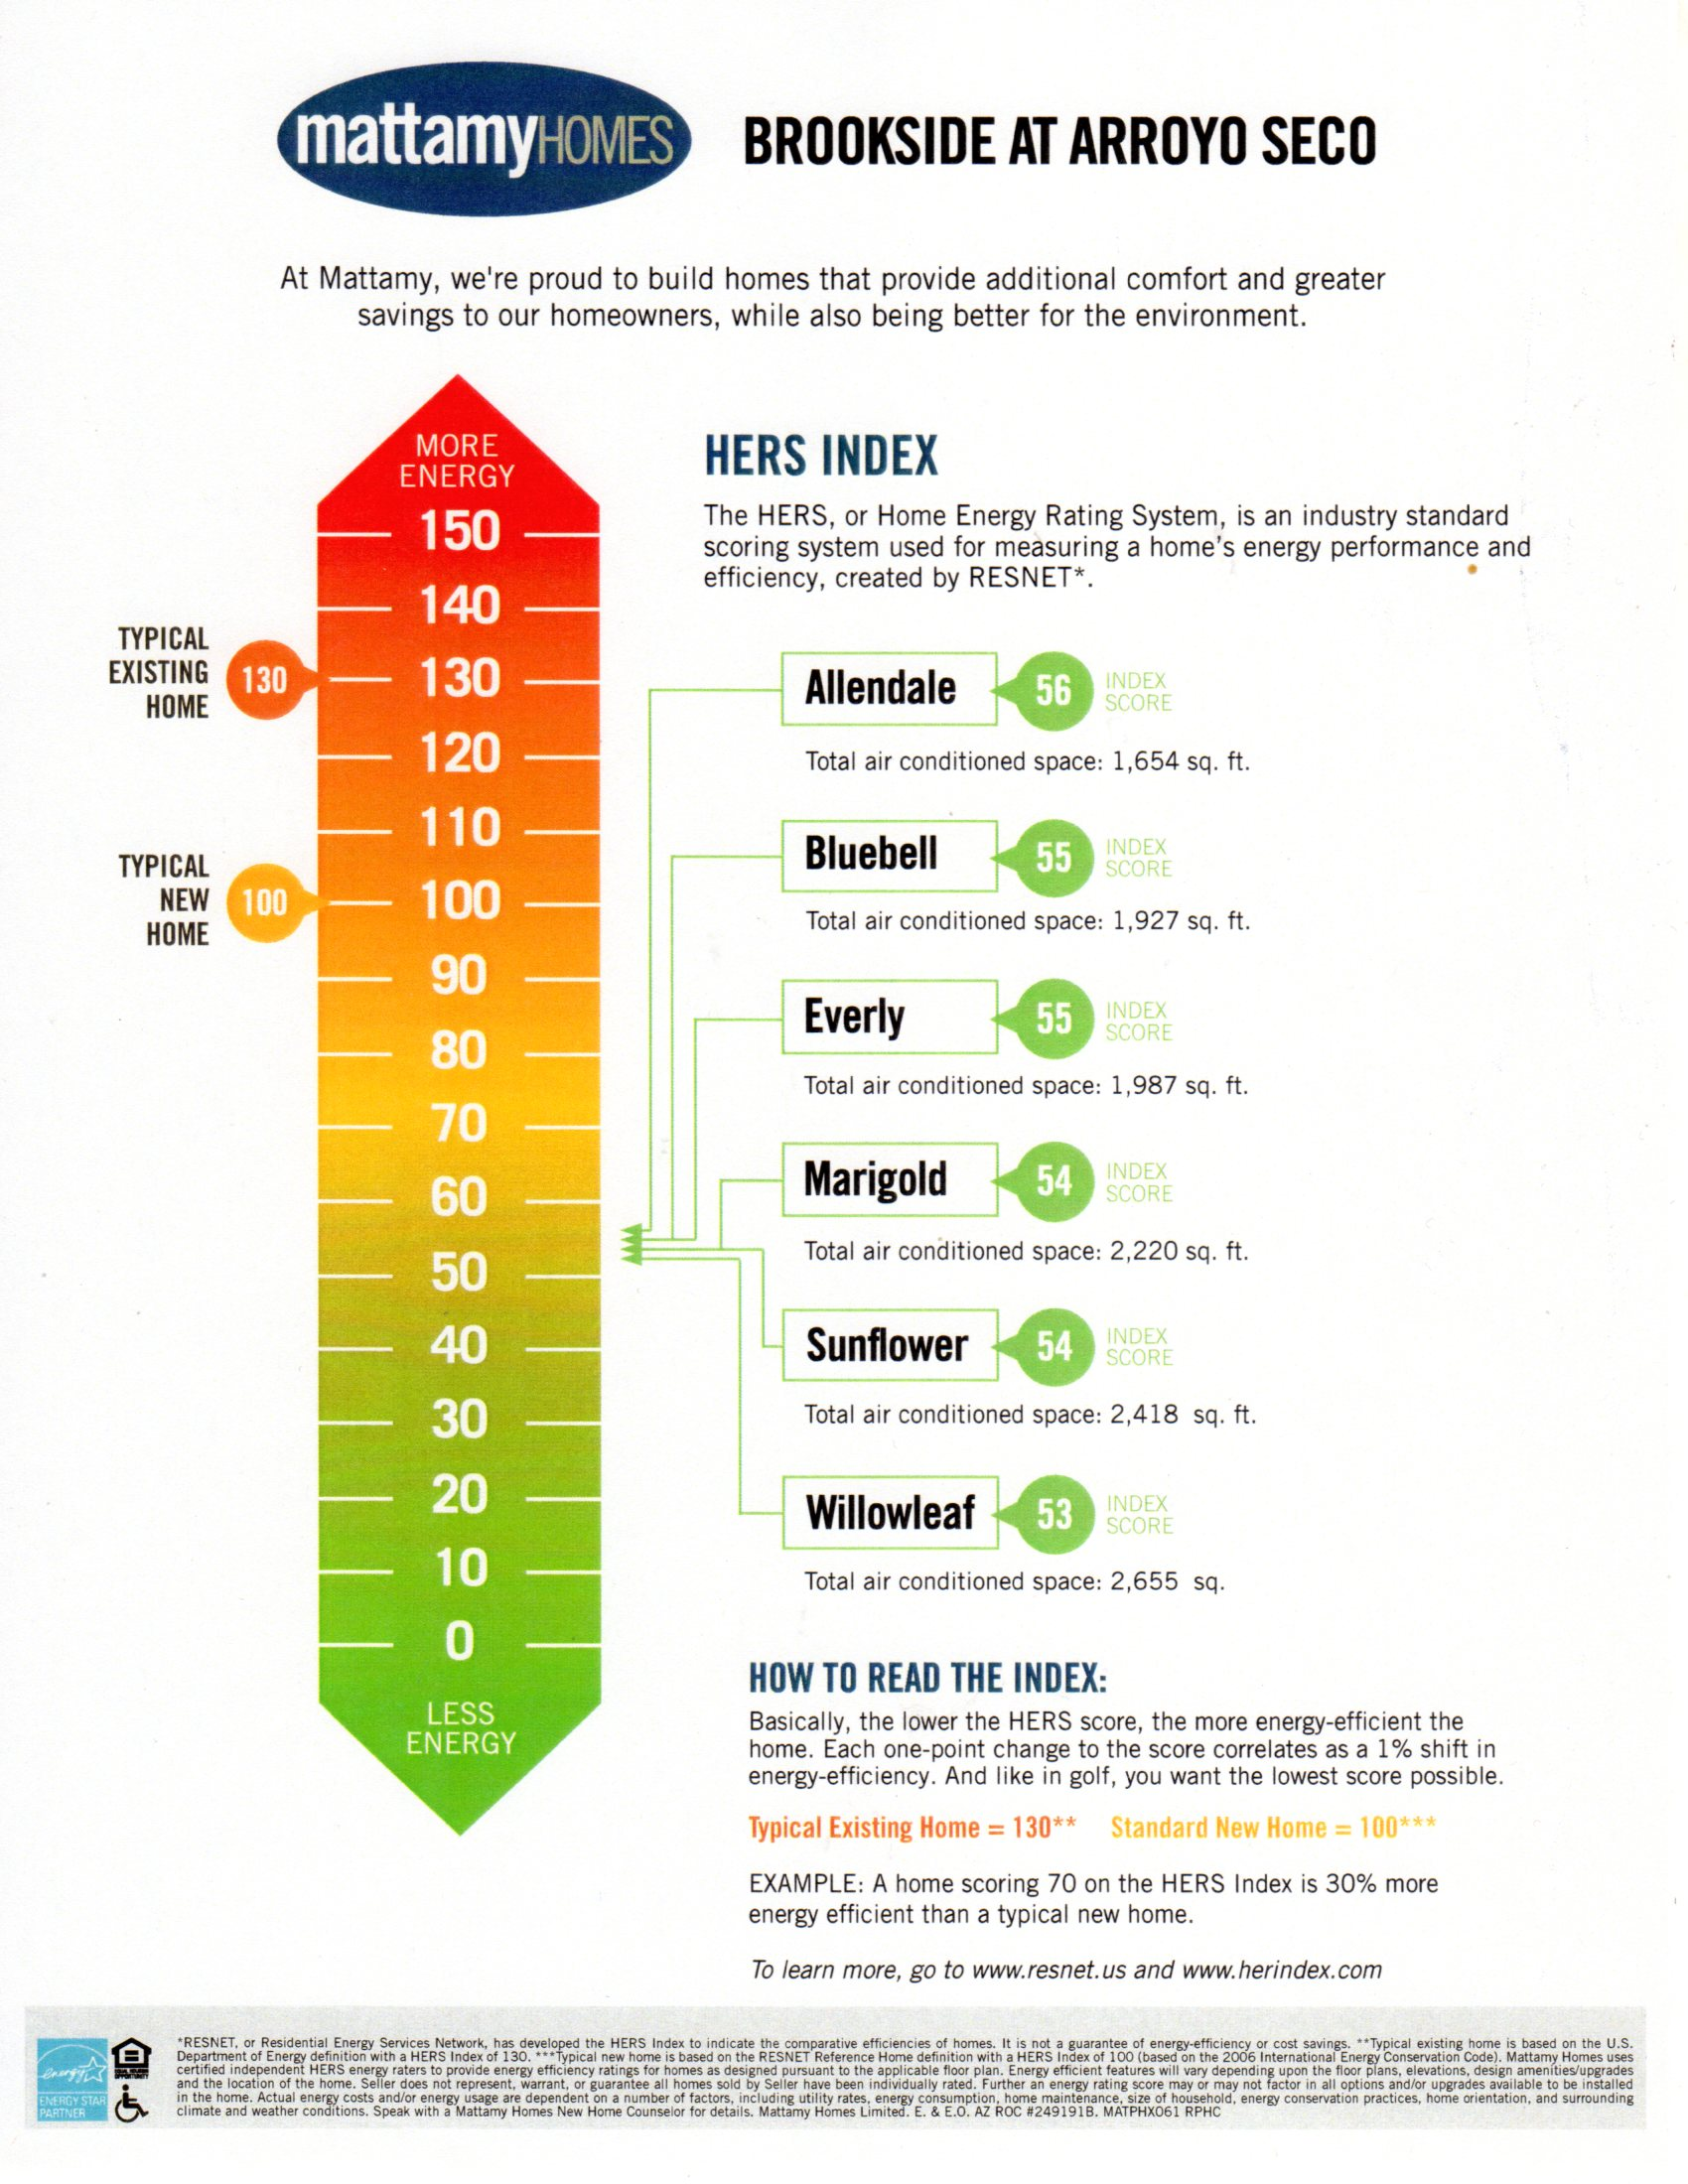 HERS ENERGY RATINGS